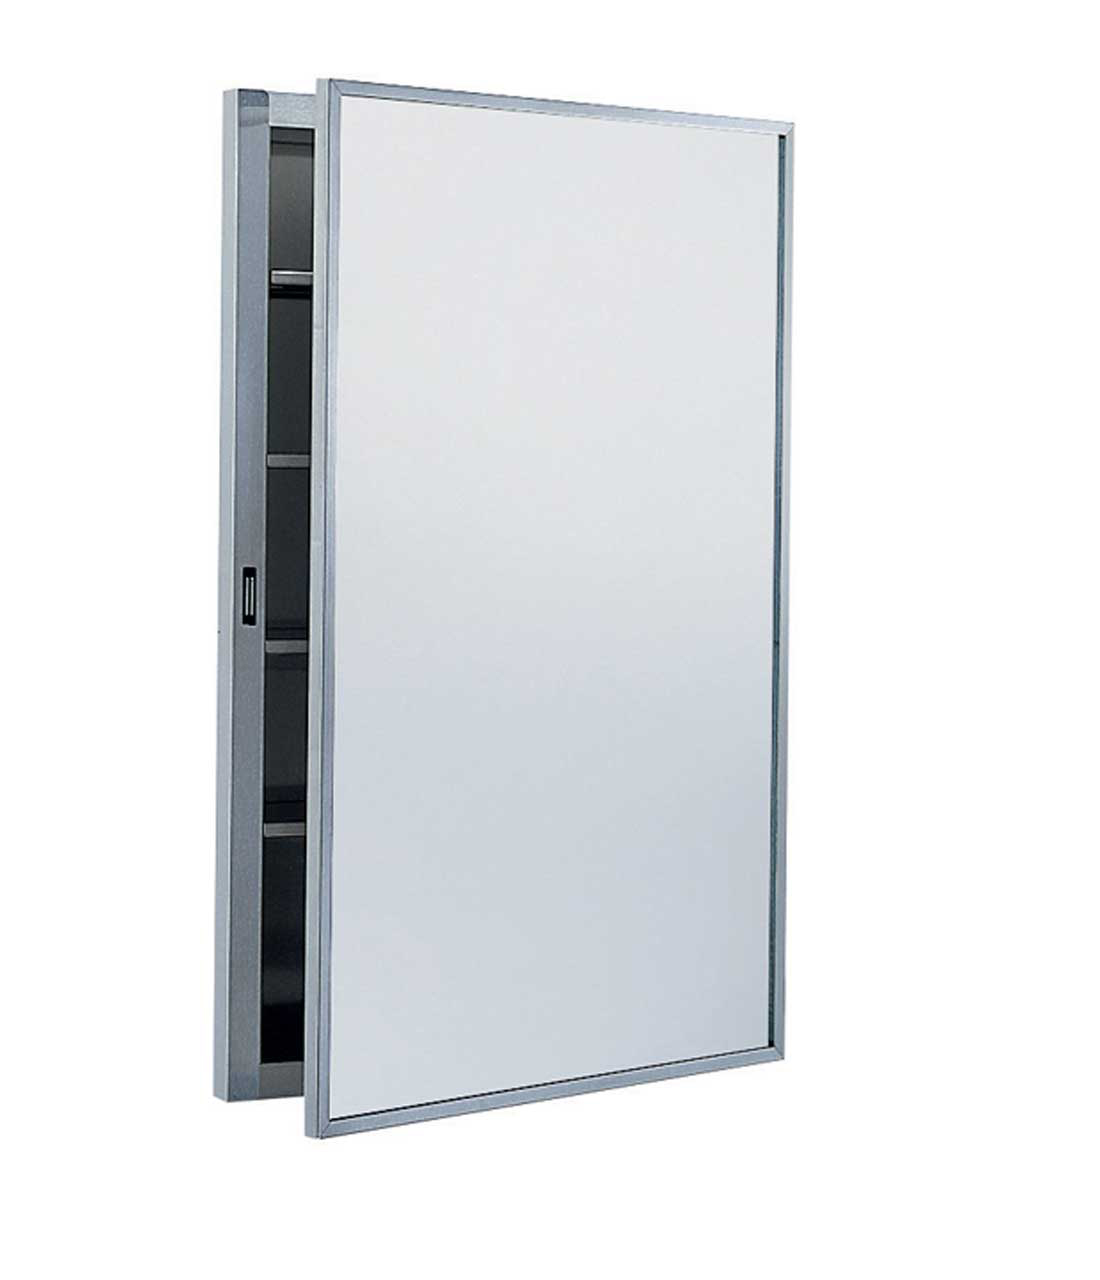 big recessed medicine cabinet no mirror with one door